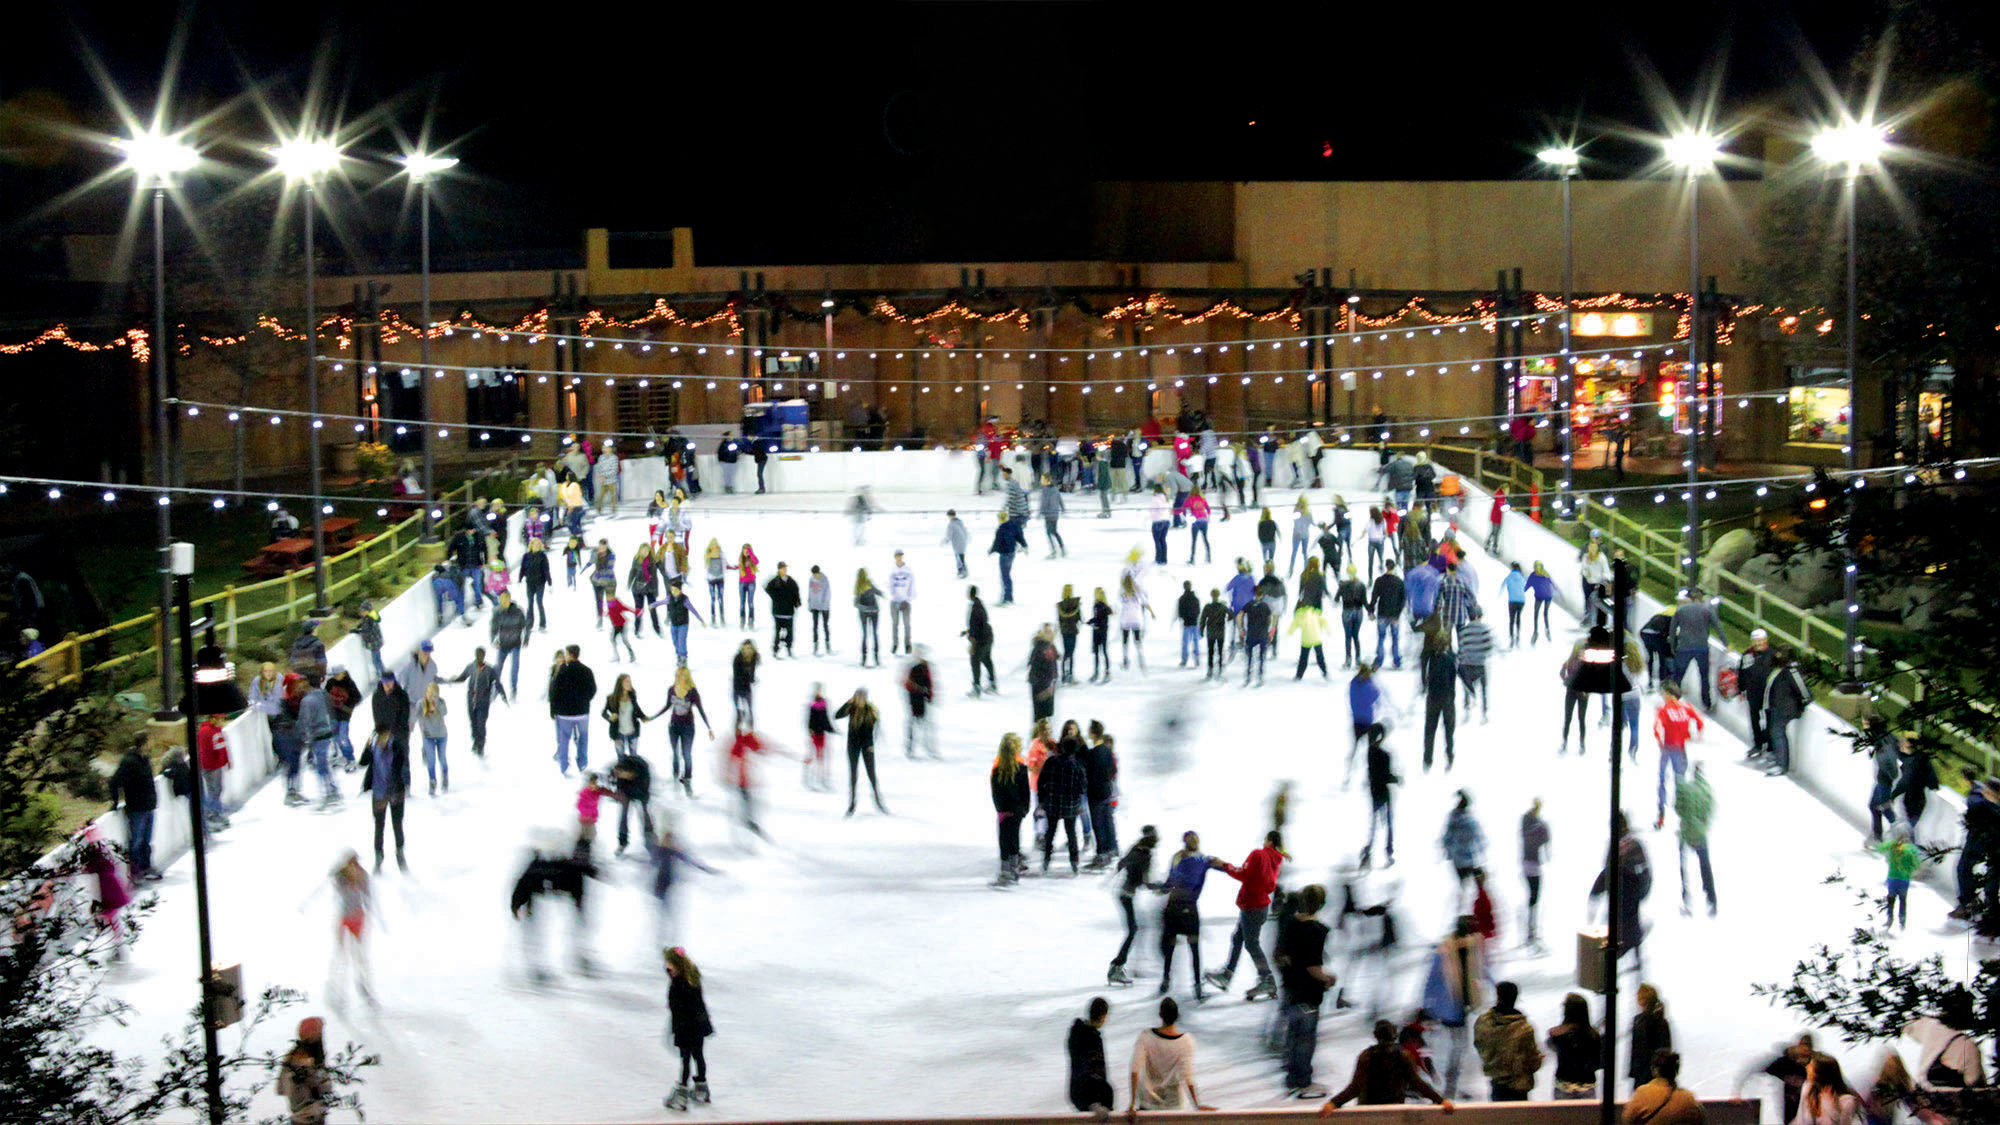 viejas casino resort opens their holiday ice skating rink